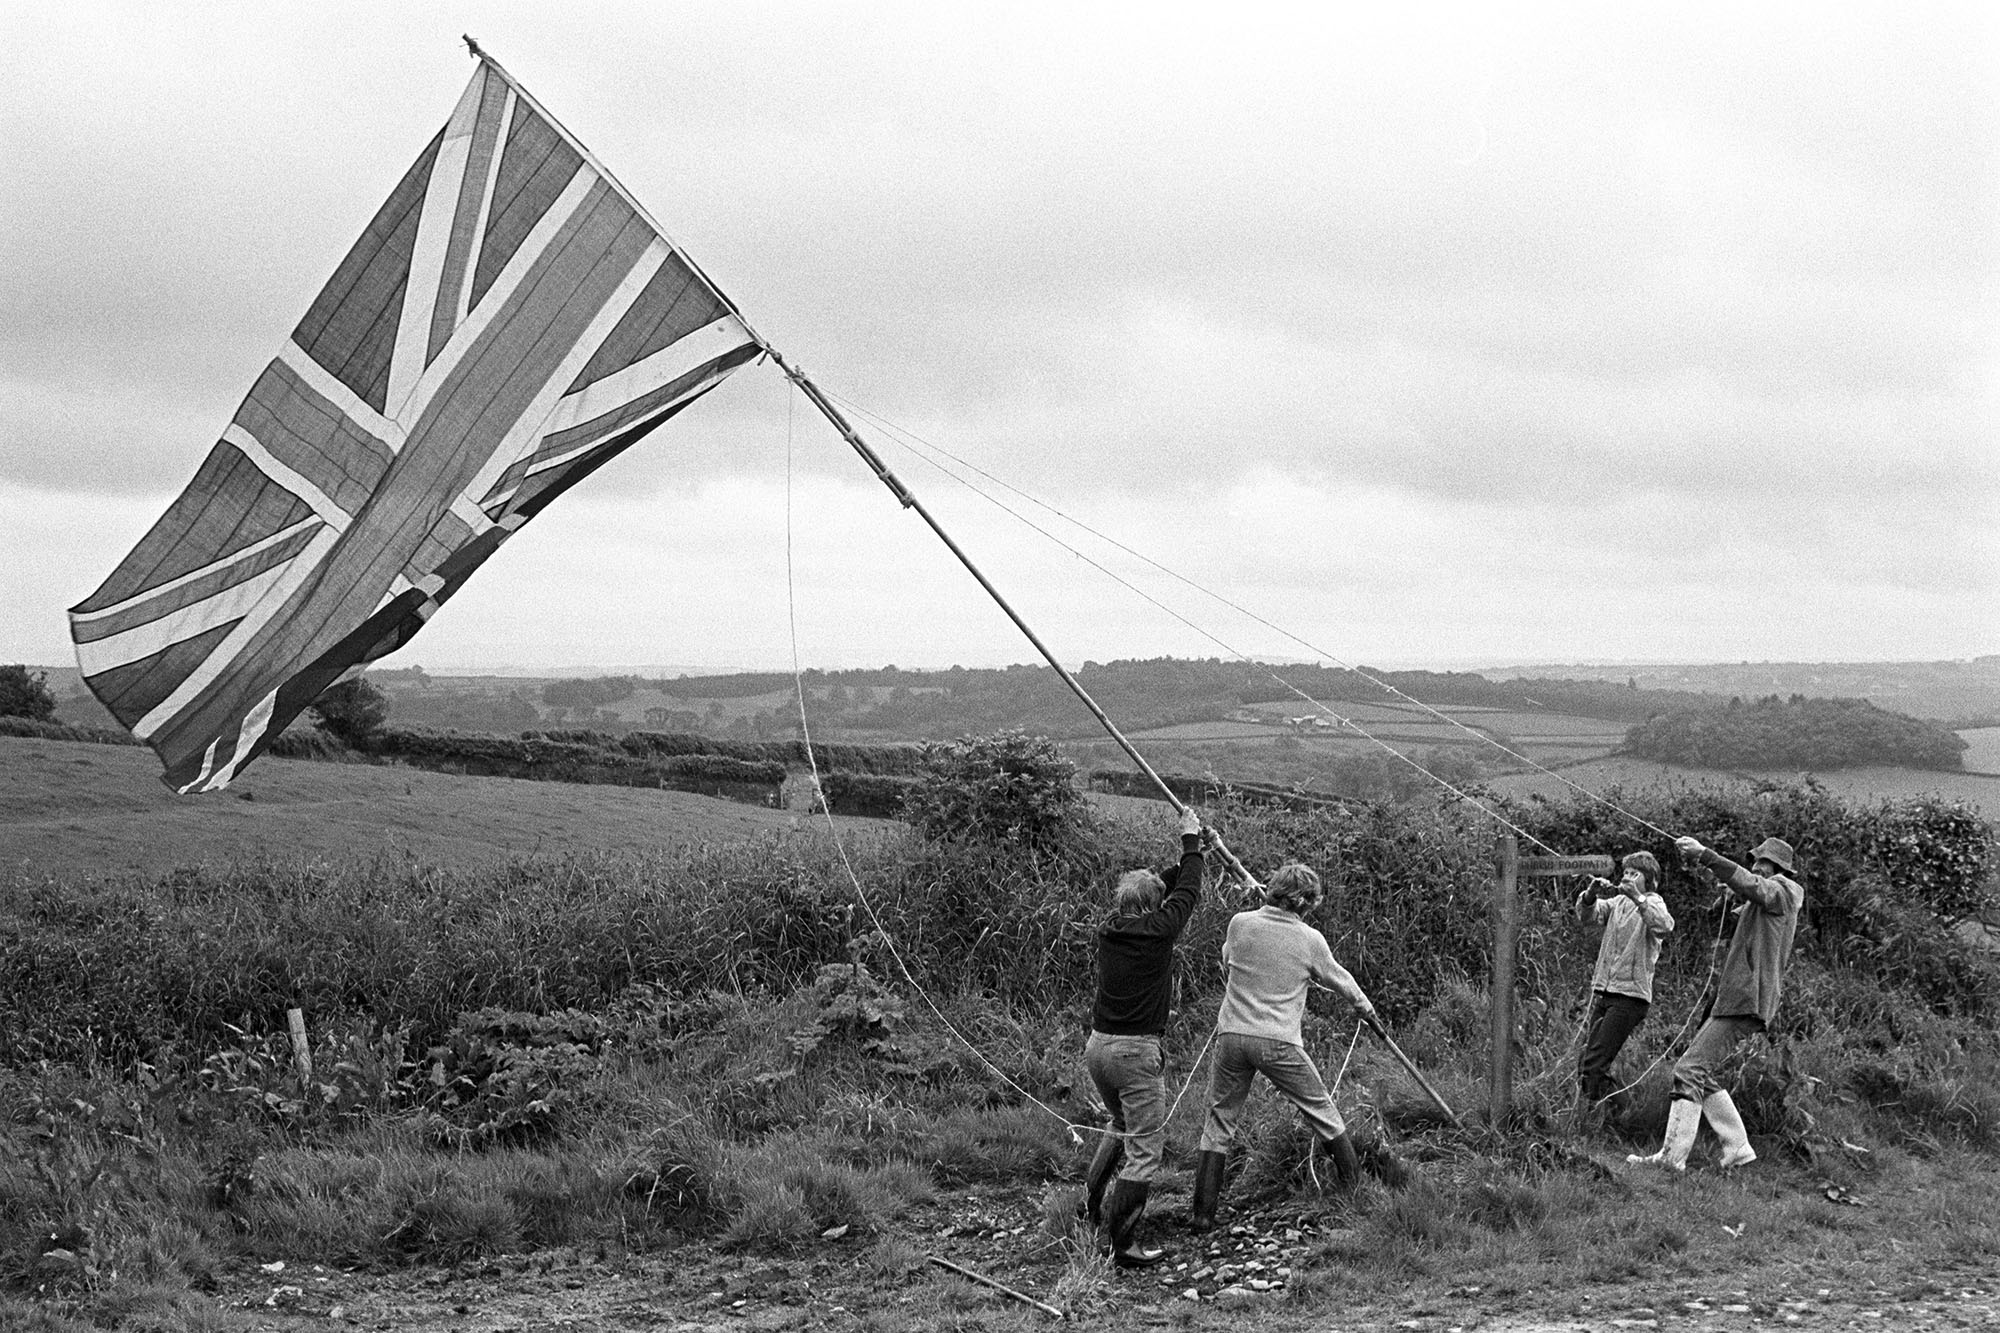 Hoisting the Jubilee flag, Harepath, South Harepath, Beaford, June 1977